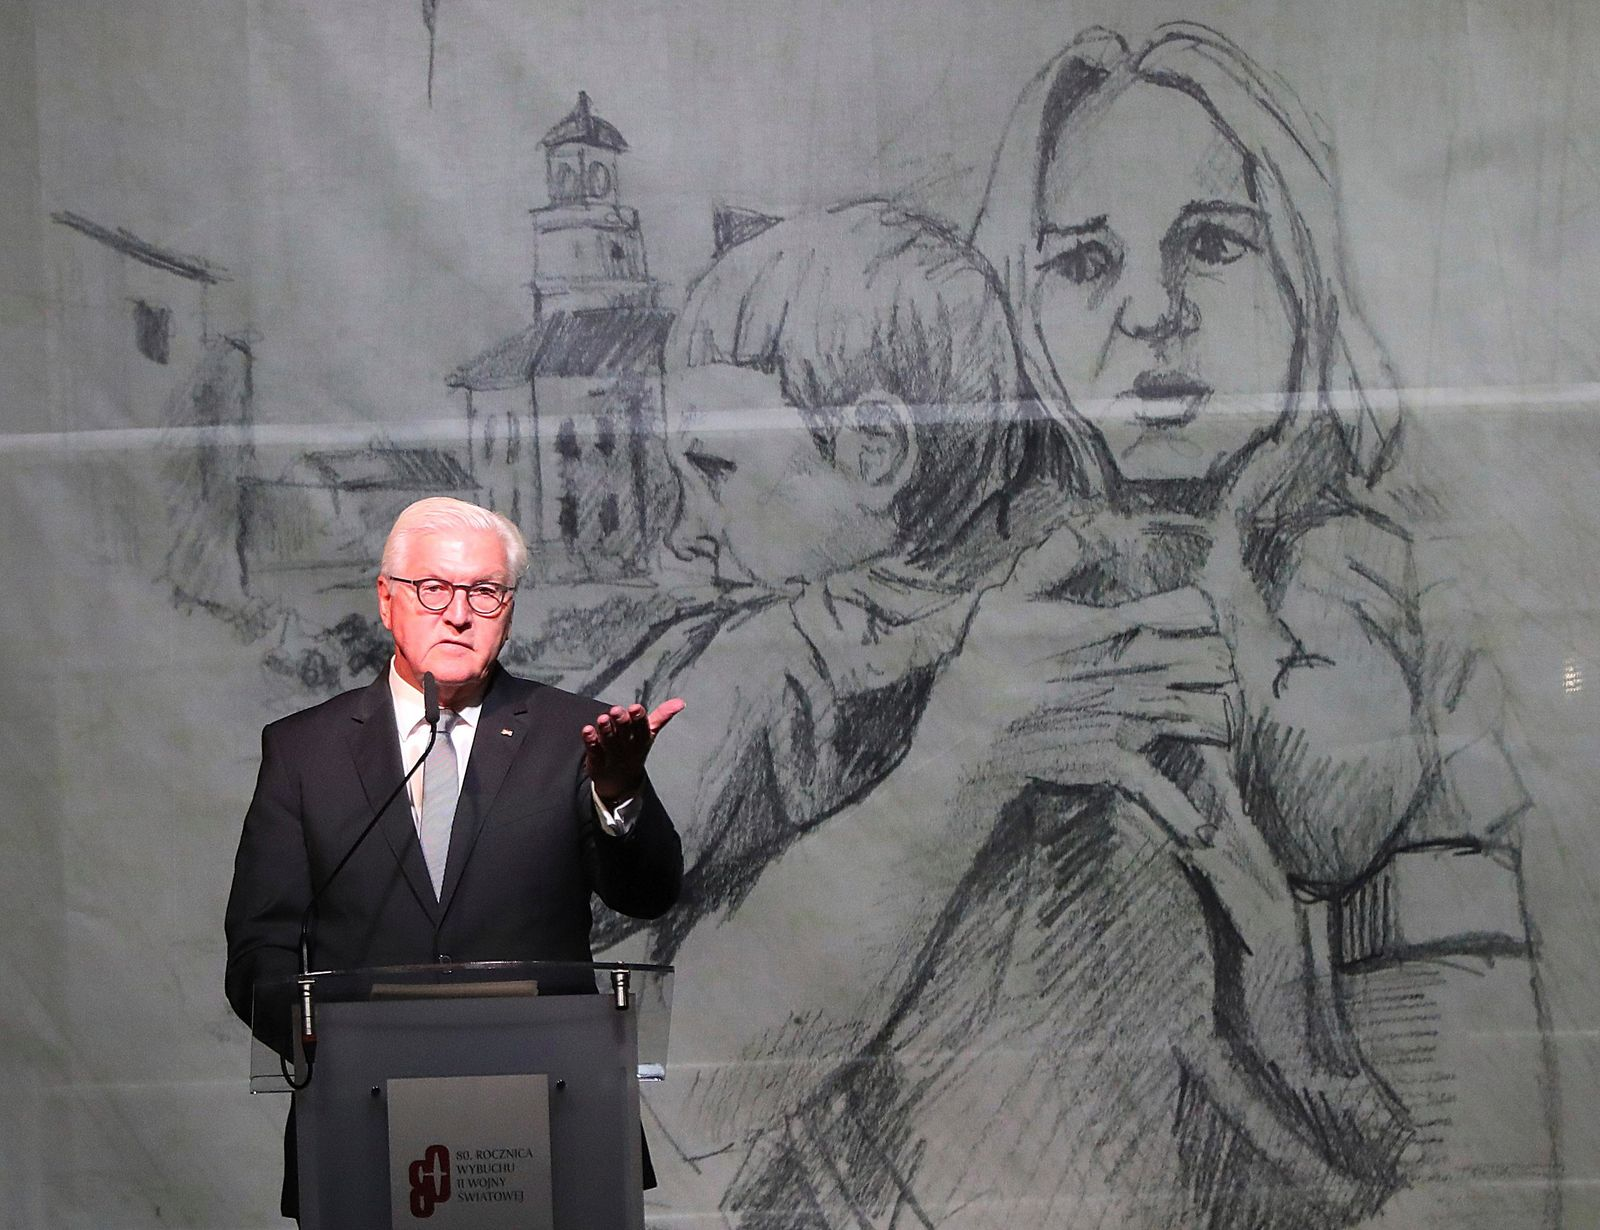 German President Frank-Walter Steinmeier speaks at the commemoration ceremony  of the 80th anniversary of the start of World War II, in Wielun, Poland, Sunday, Sept. 1, 2019. (AP Photo/Czarek Sokolowski)